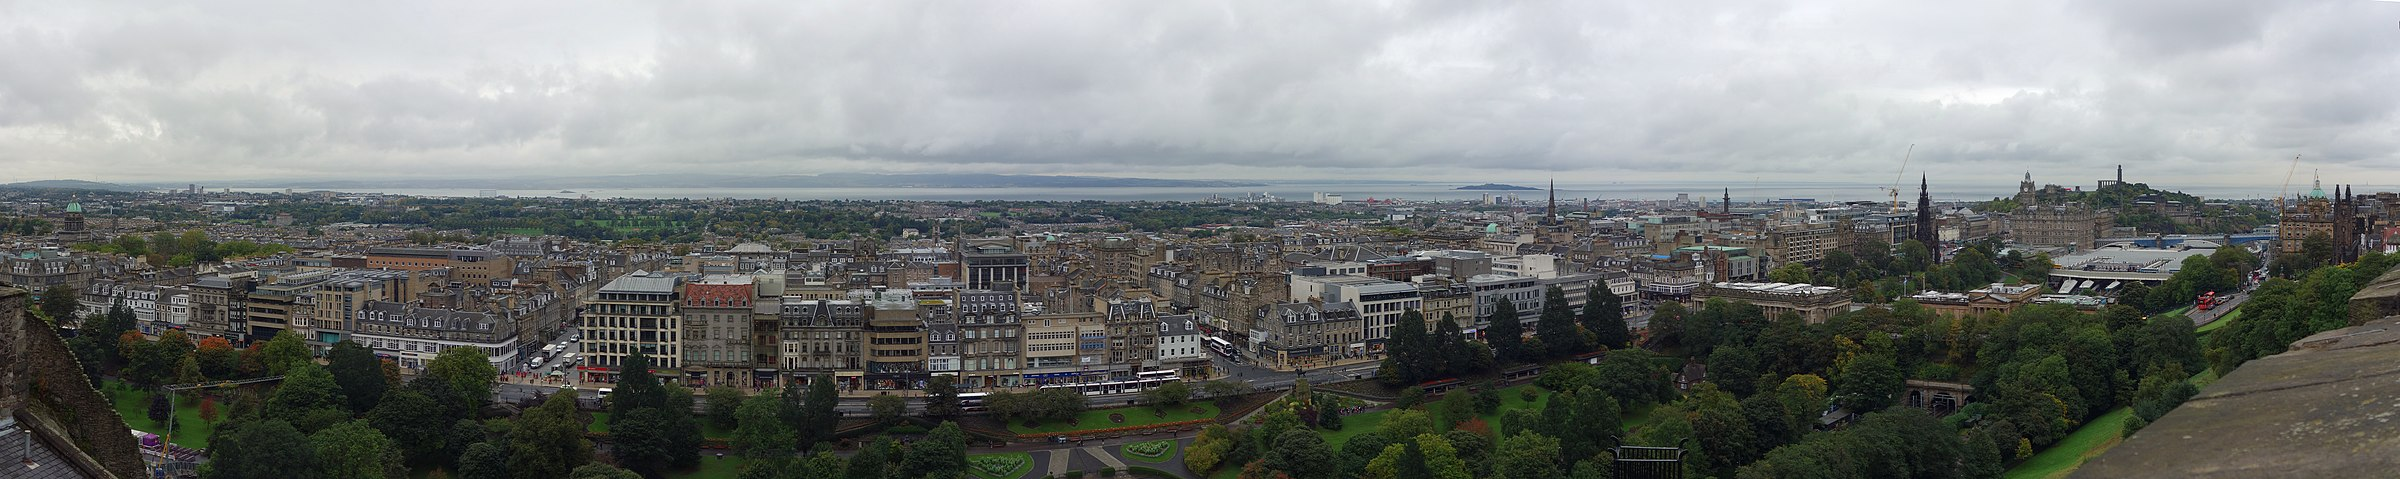 Panorama of Edinburgh from Edinburgh Castle, with the New Town in the centre and Calton Hill to the right Edinburgh Edinburgh Castle Panorama 01.jpg